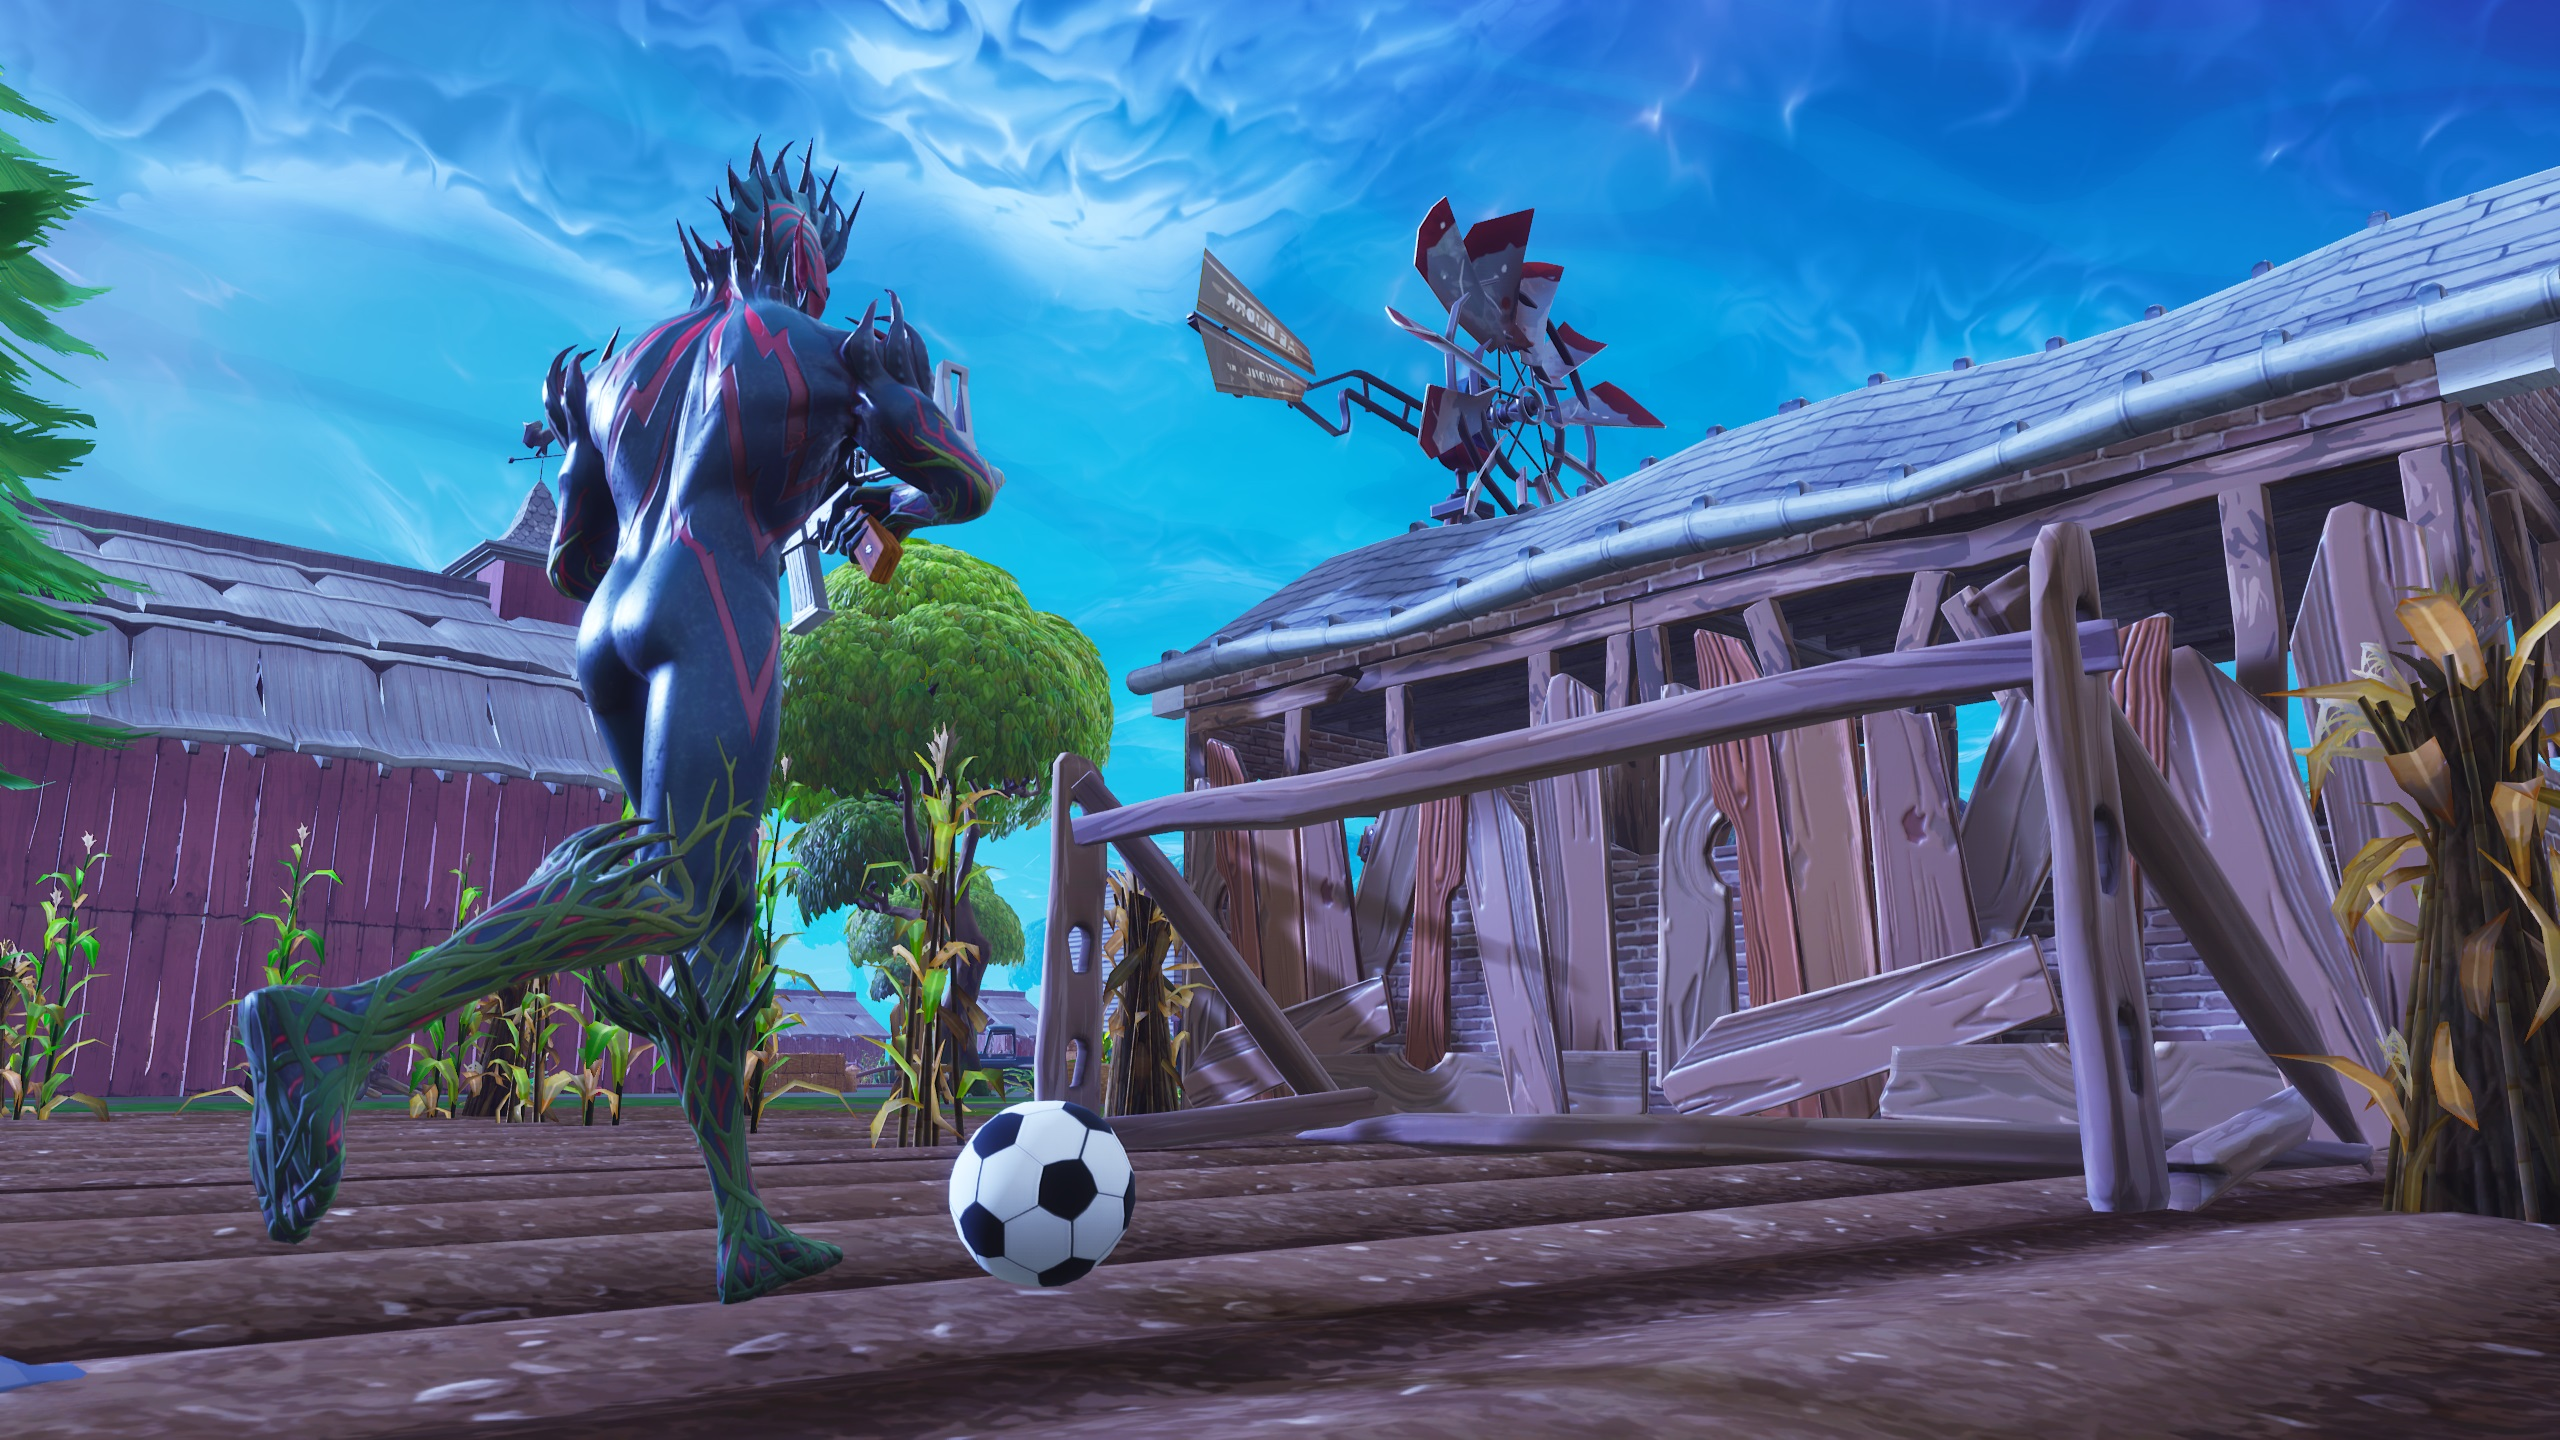 Fortnite Soccer Skins Wallpapers Wallpaper Cave Fortnite